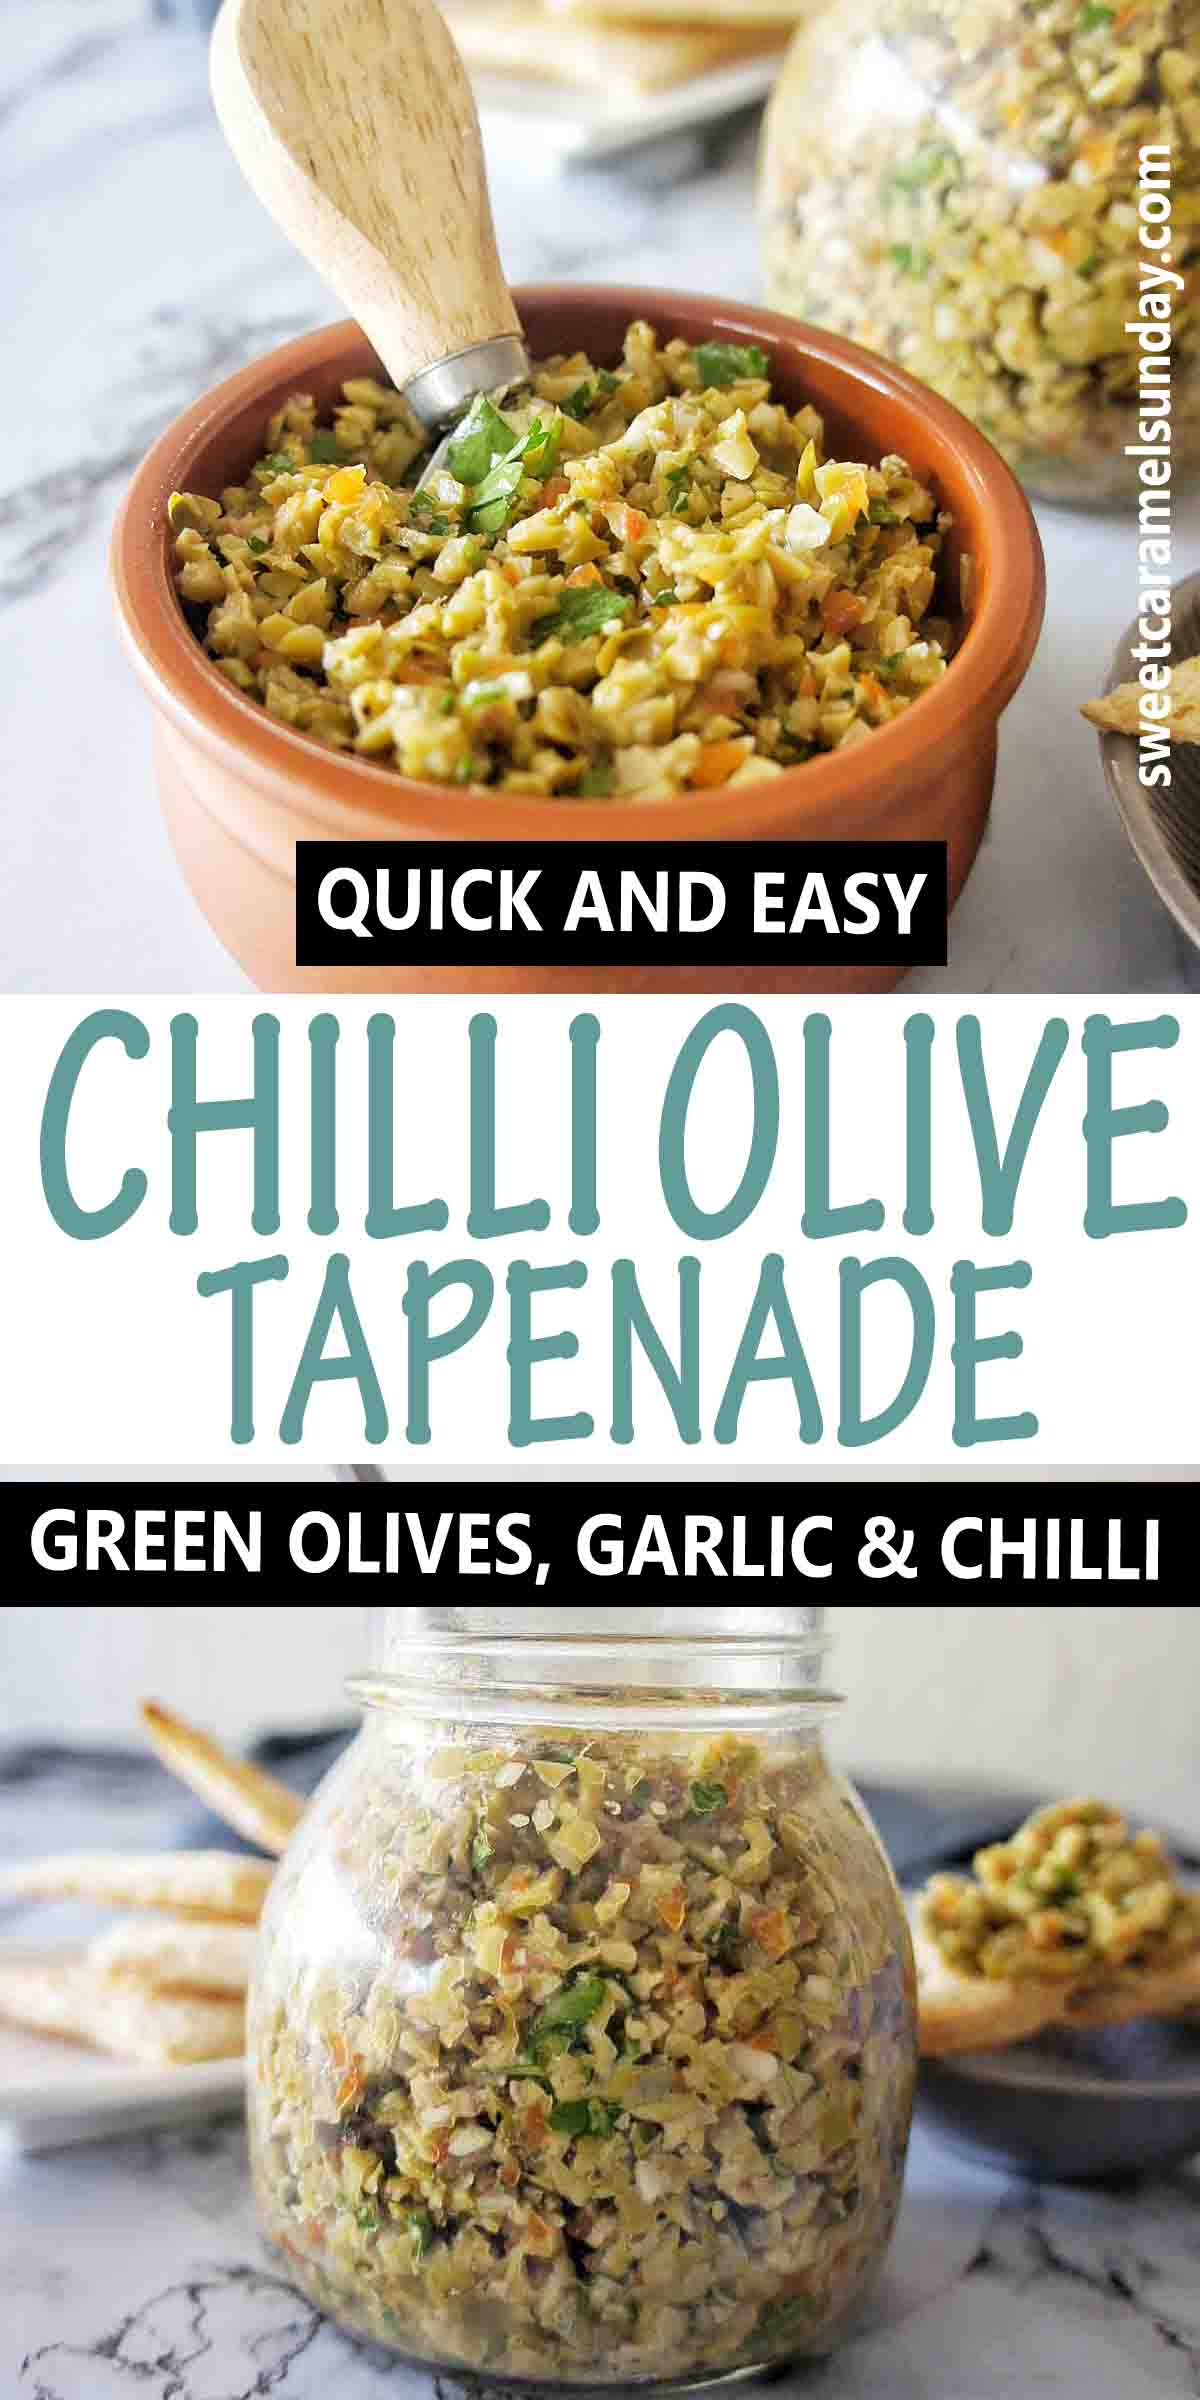 Spicy Olive Tapenade with text over lay